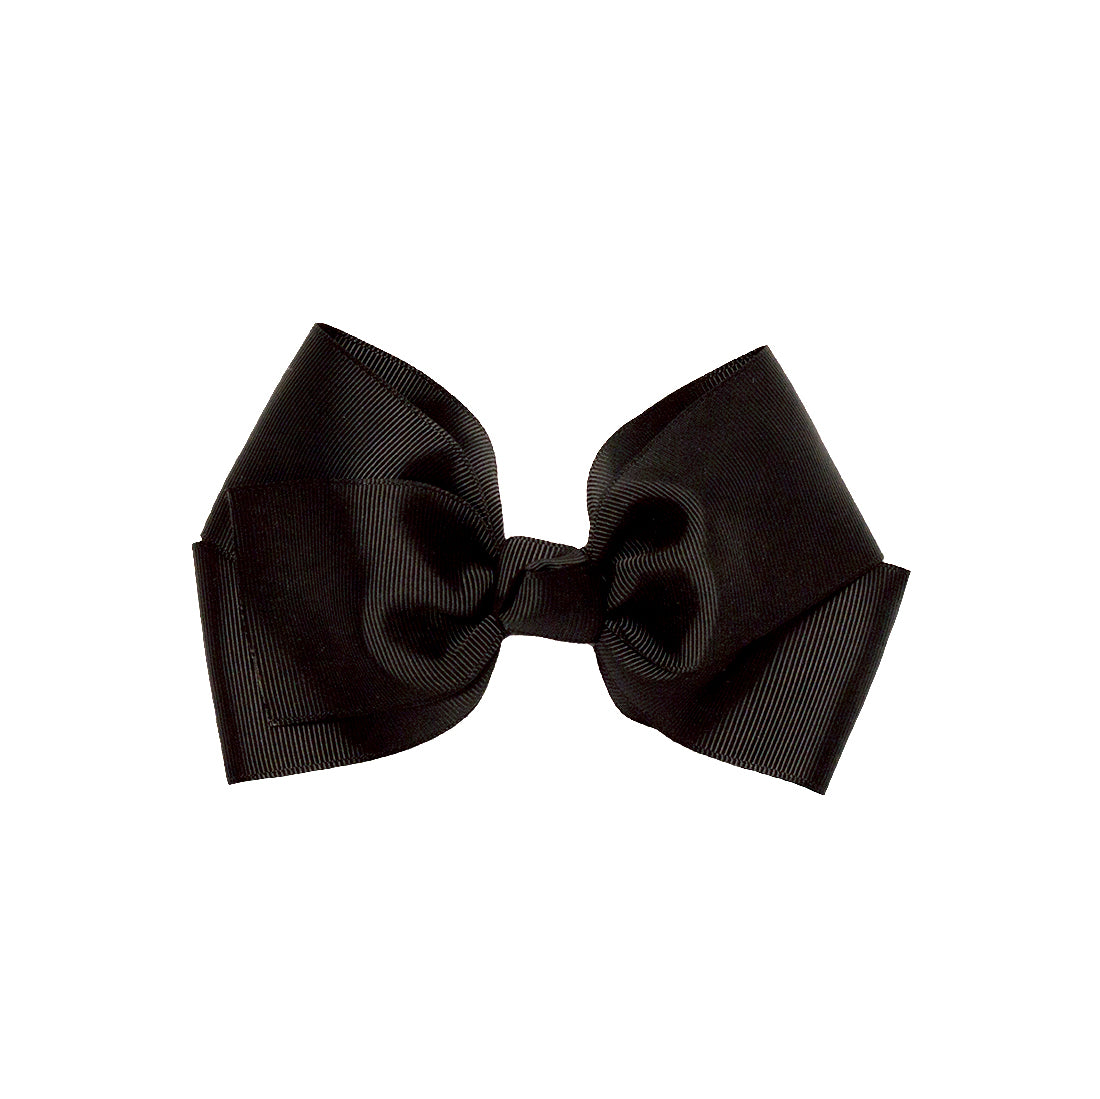 Mia® Spirit Grosgrain Ribbon Bow Barrette - large size - black color - designed by #MiaKaminski of Mia Beauty